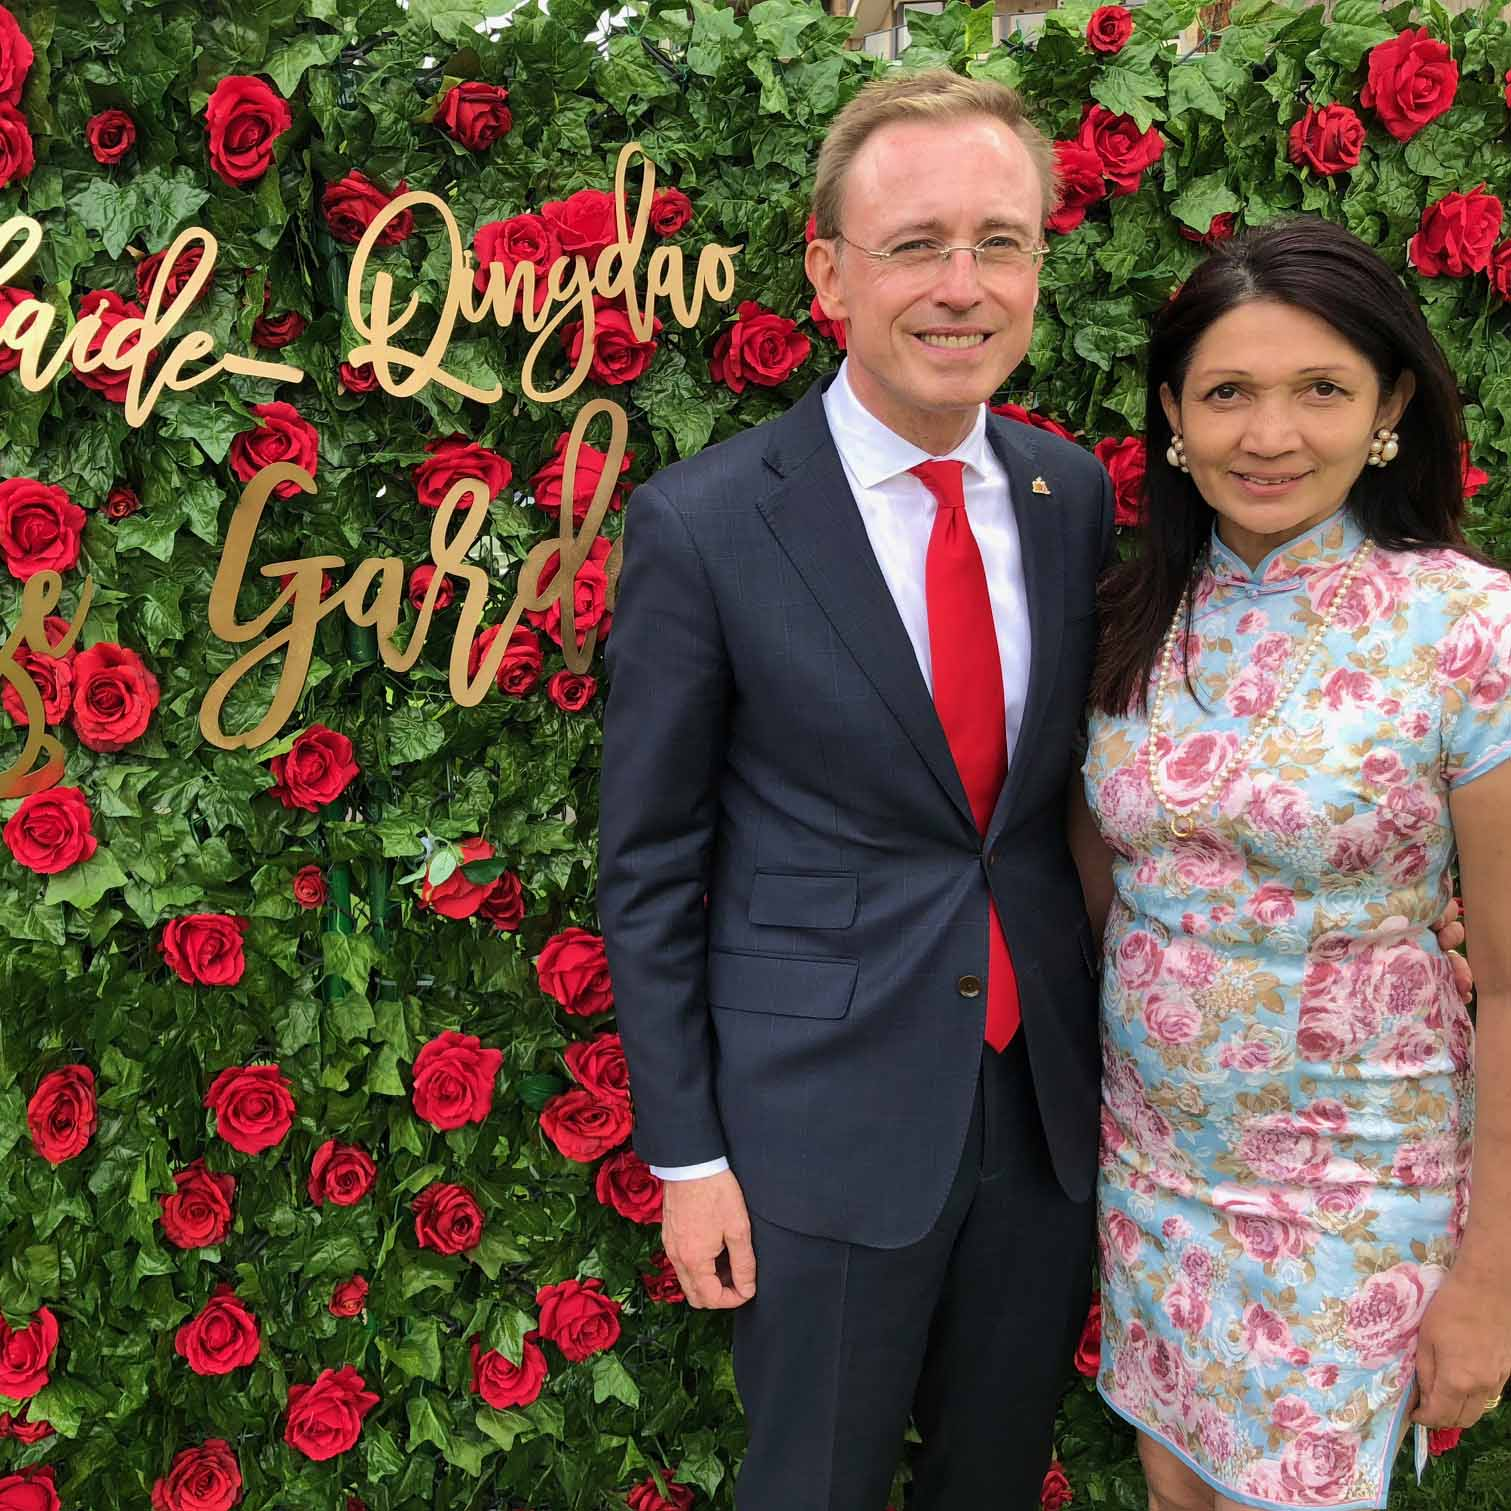 Qingdao City Shandong Province Sister City Garden Veale Gardens Adelaide Parklands Lord Mayor Martin Haese and Lady Mayoress Genevieve Theseira-Haese